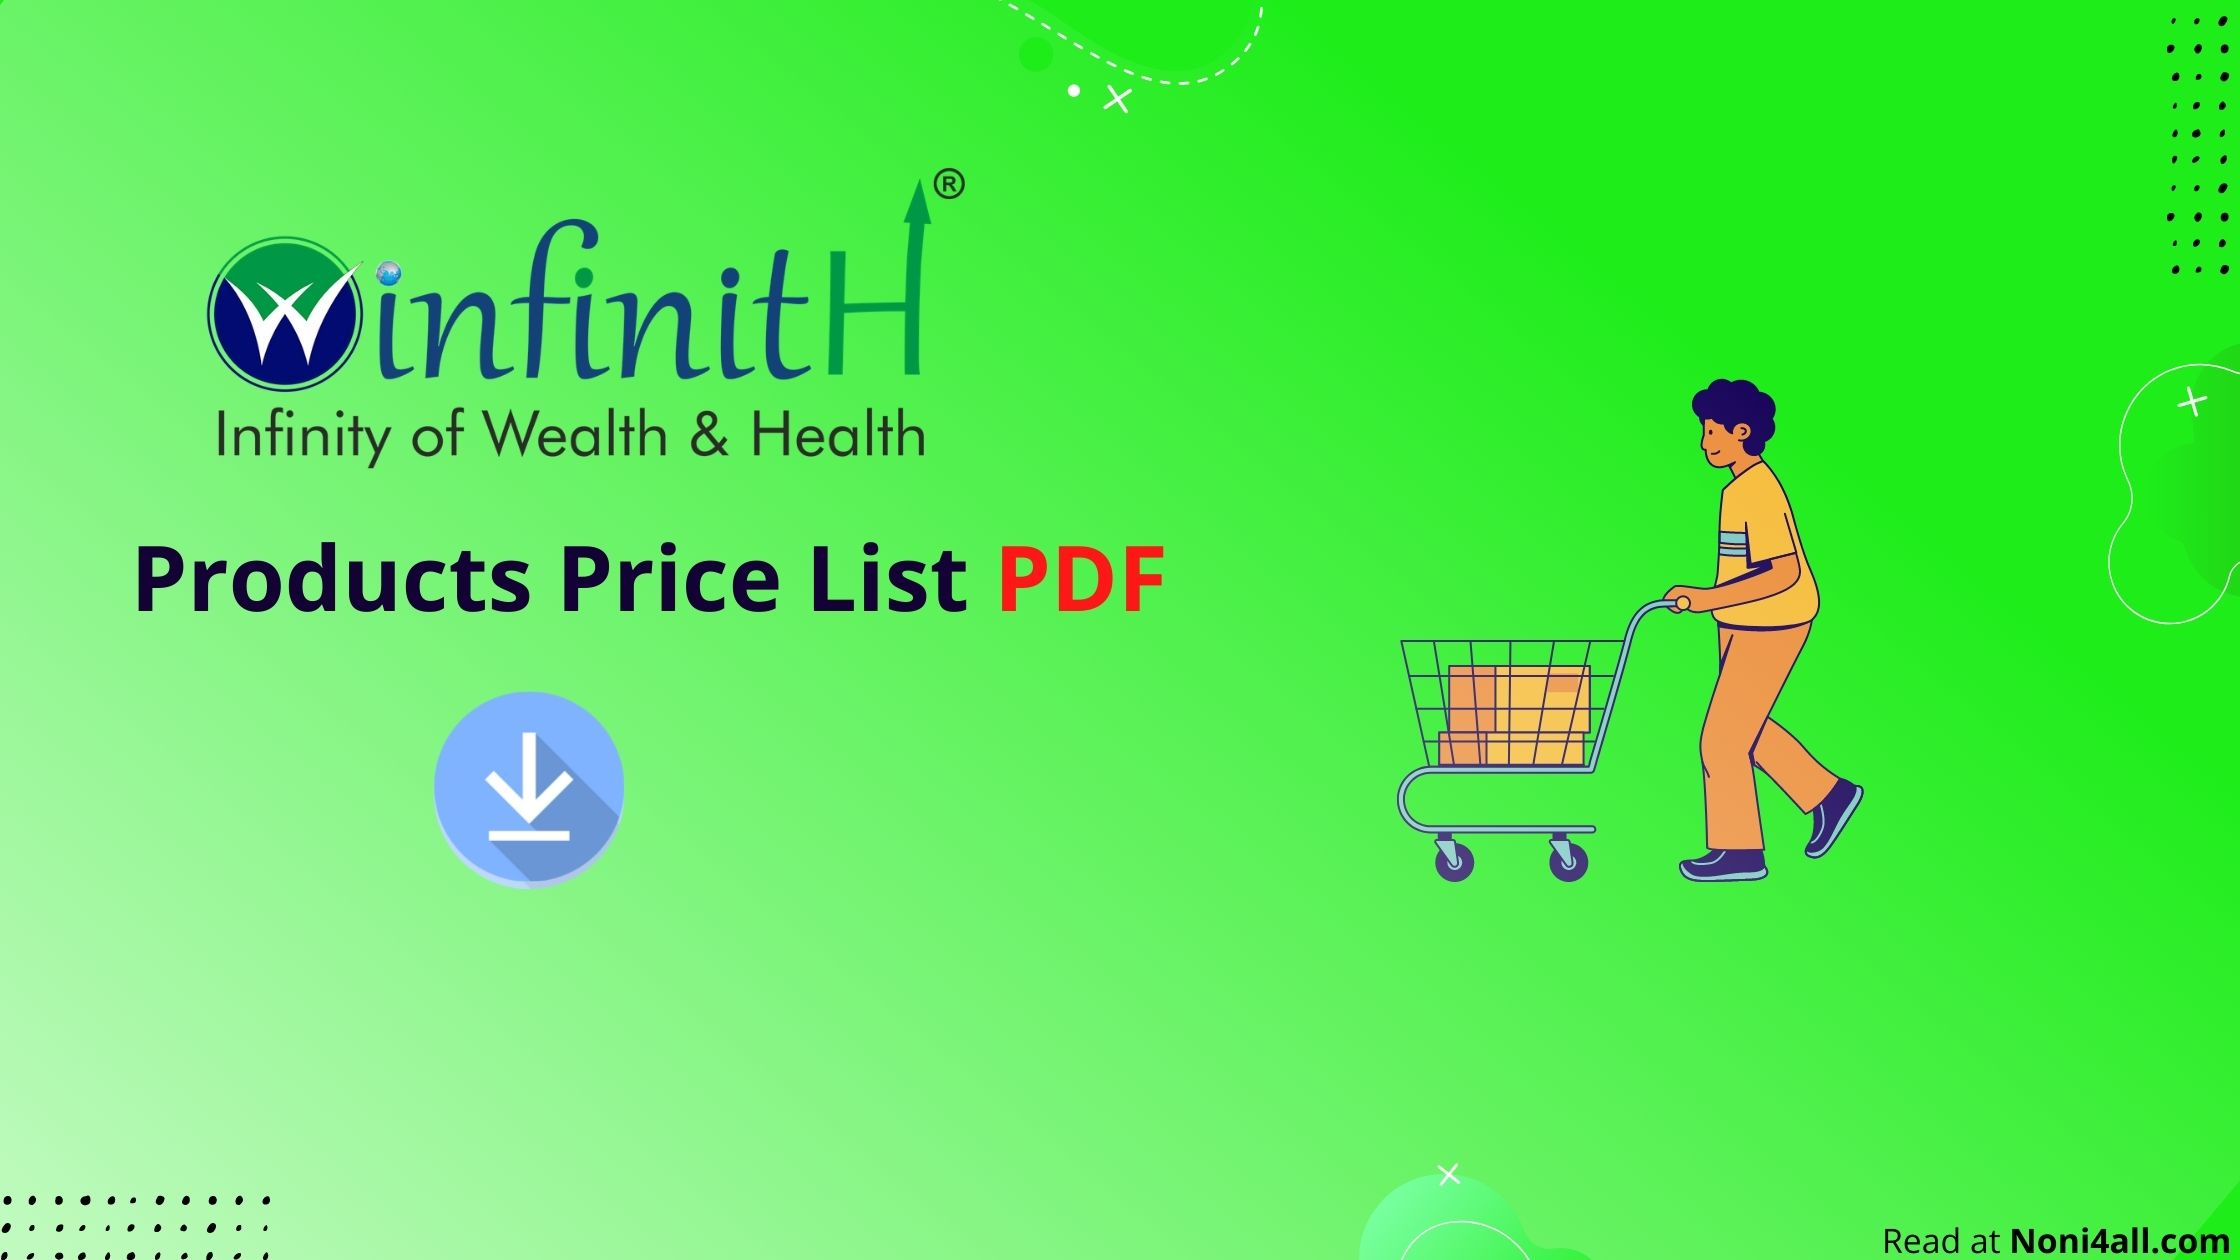 Winfinith Products Price List PDF